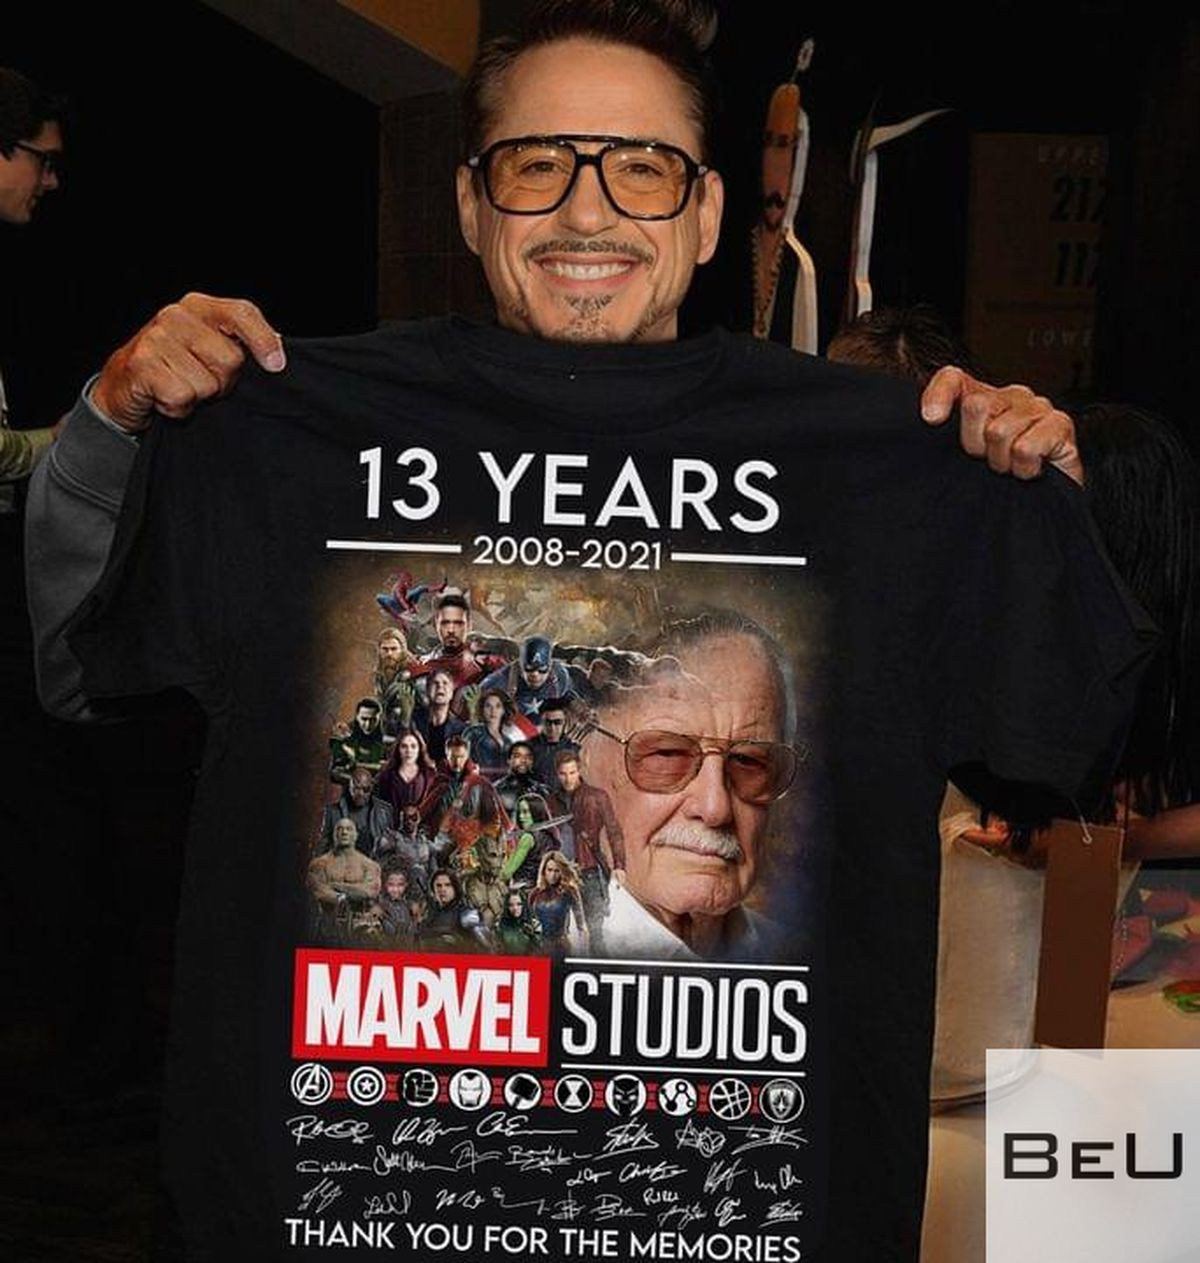 13 Years 2008 2021 Marvel Studios Thank You For The Memories Shirtv